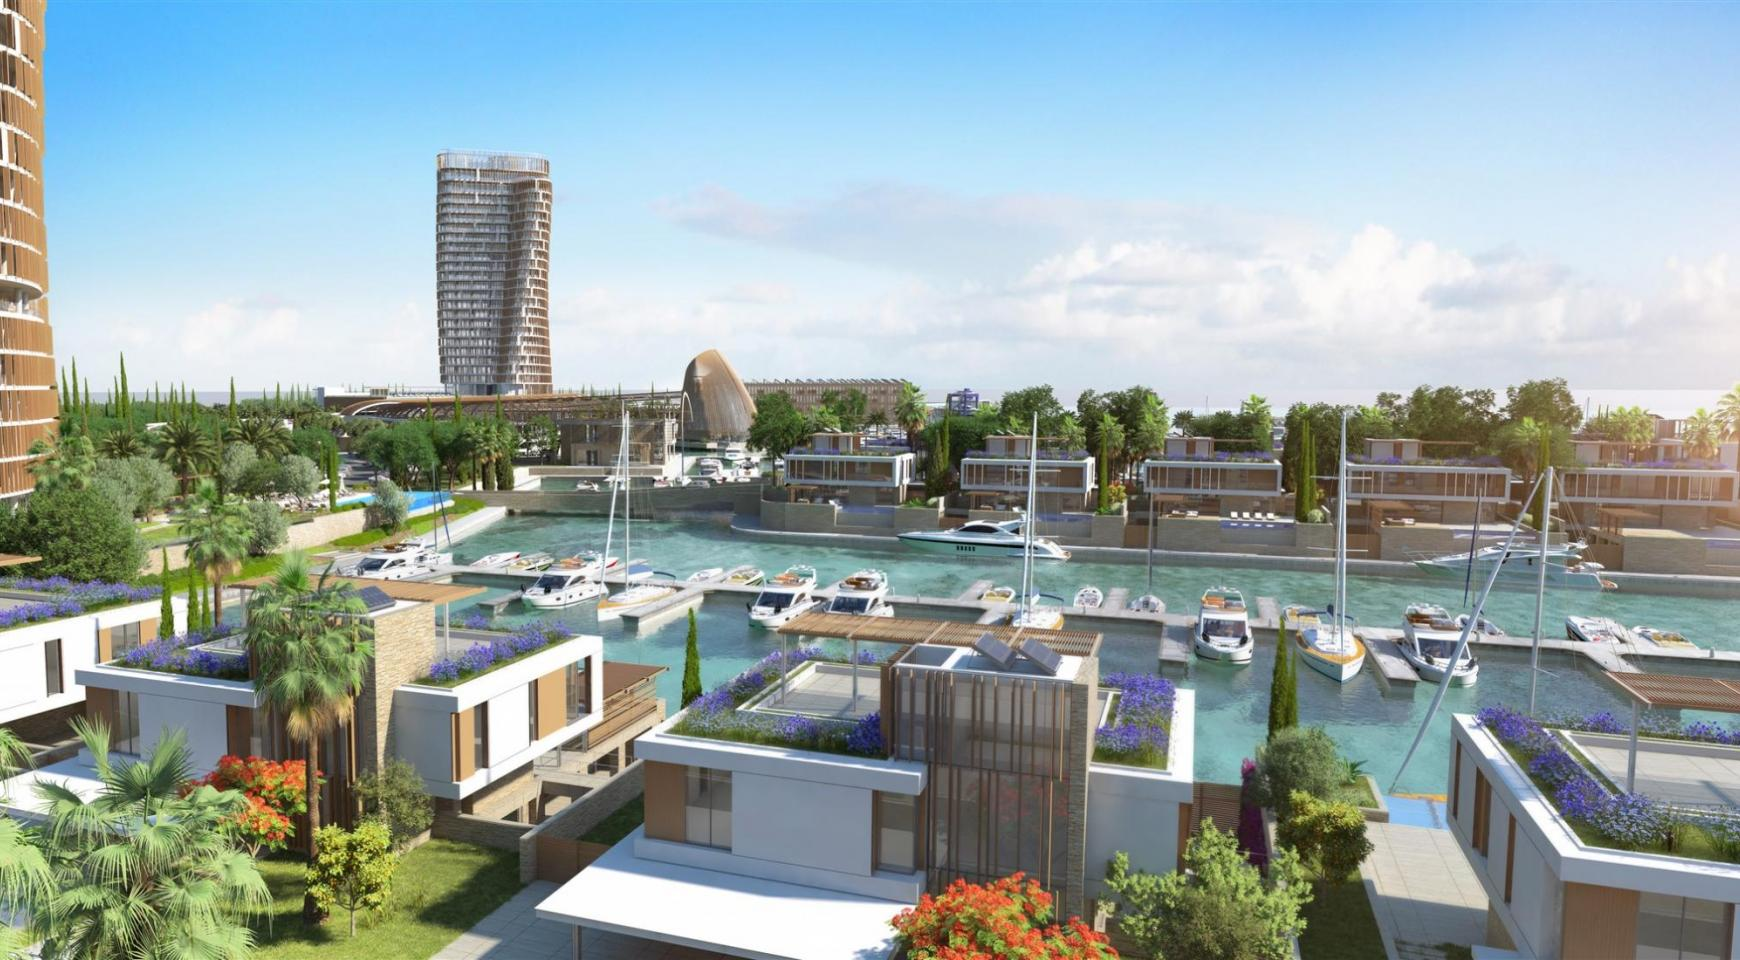 3 Bedroom Apartment in an Exclusive Project by the Sea - 3